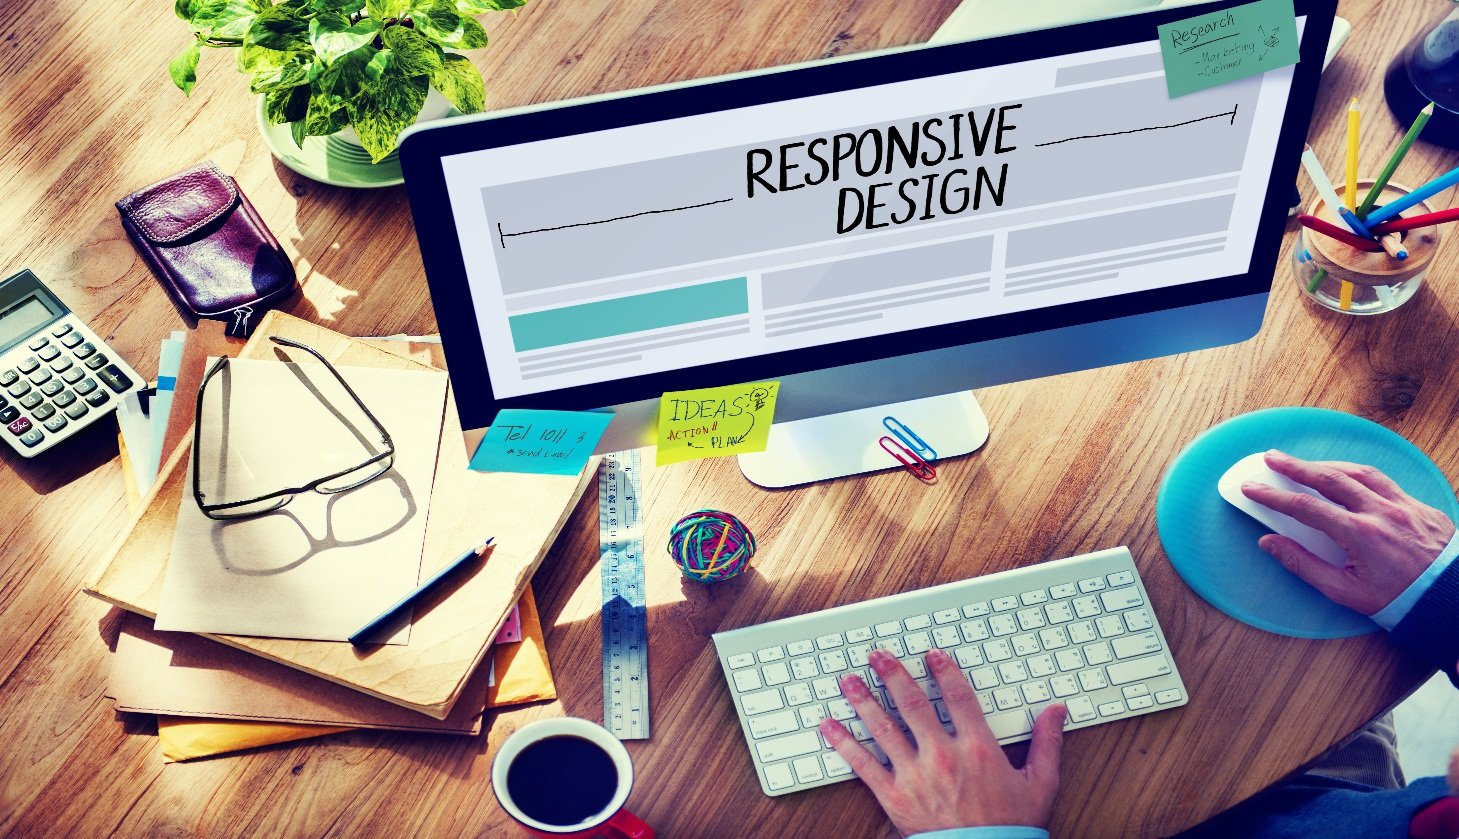 How to Hire a Good Web Designer